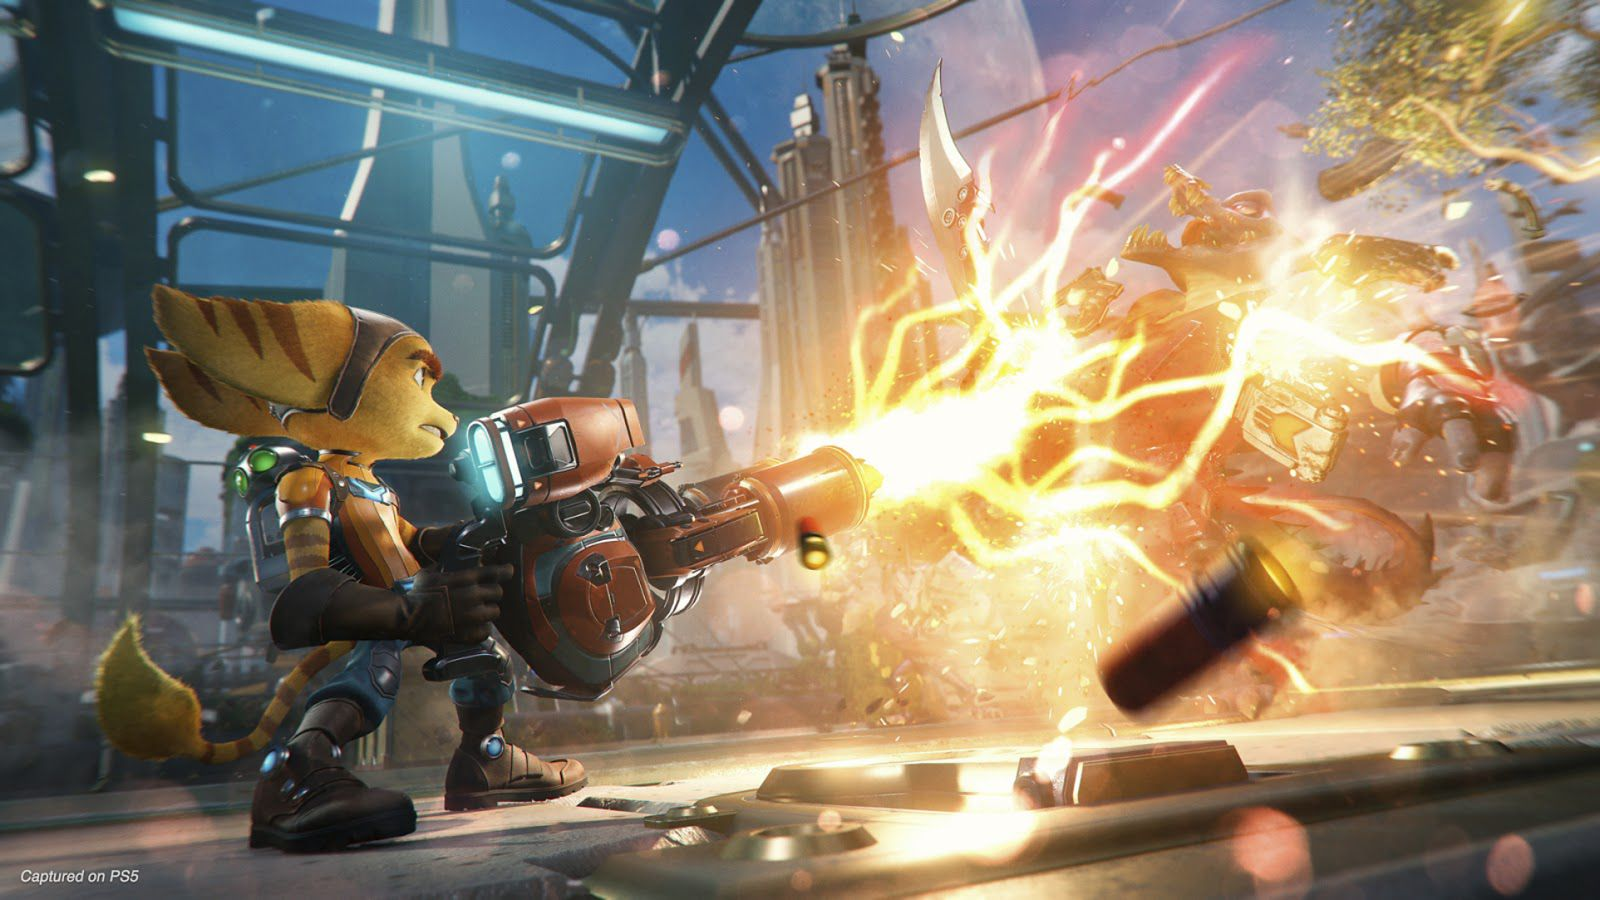 Why I Can't Wait For Ratchet and Clank on PS5